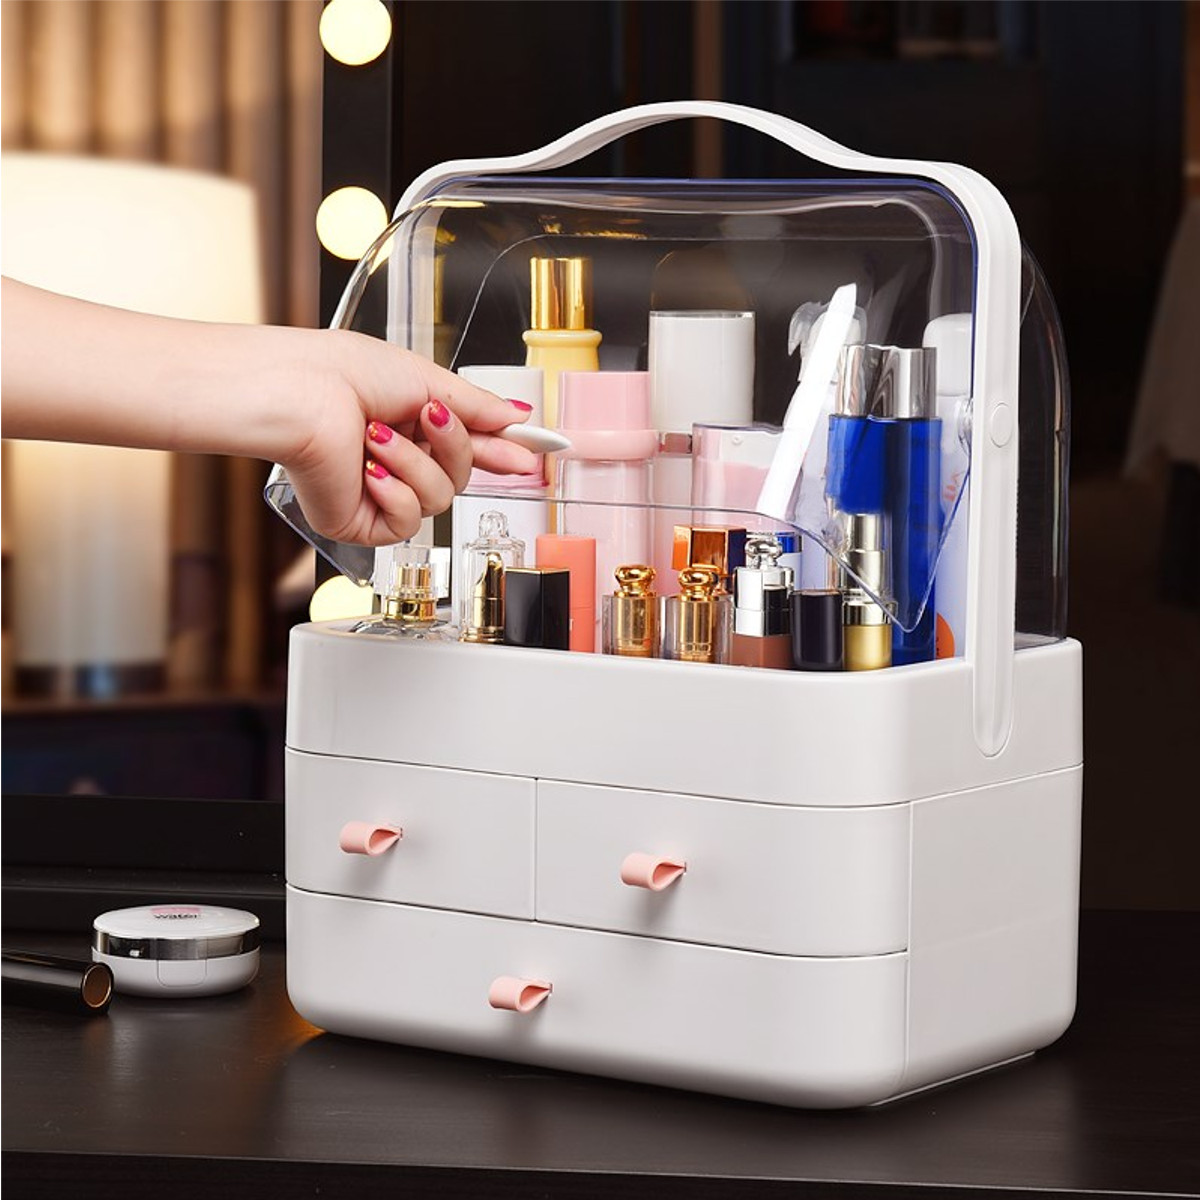 Plastic Cosmetic Drawer Storage Box Makeup Holder Organizer Box Lipstick Skin Care Products Desktop Sundry Bathroom Storage CasePlastic Cosmetic Drawer Storage Box Makeup Holder Organizer Box Lipstick Skin Care Products Desktop Sundry Bathroom Storage Case